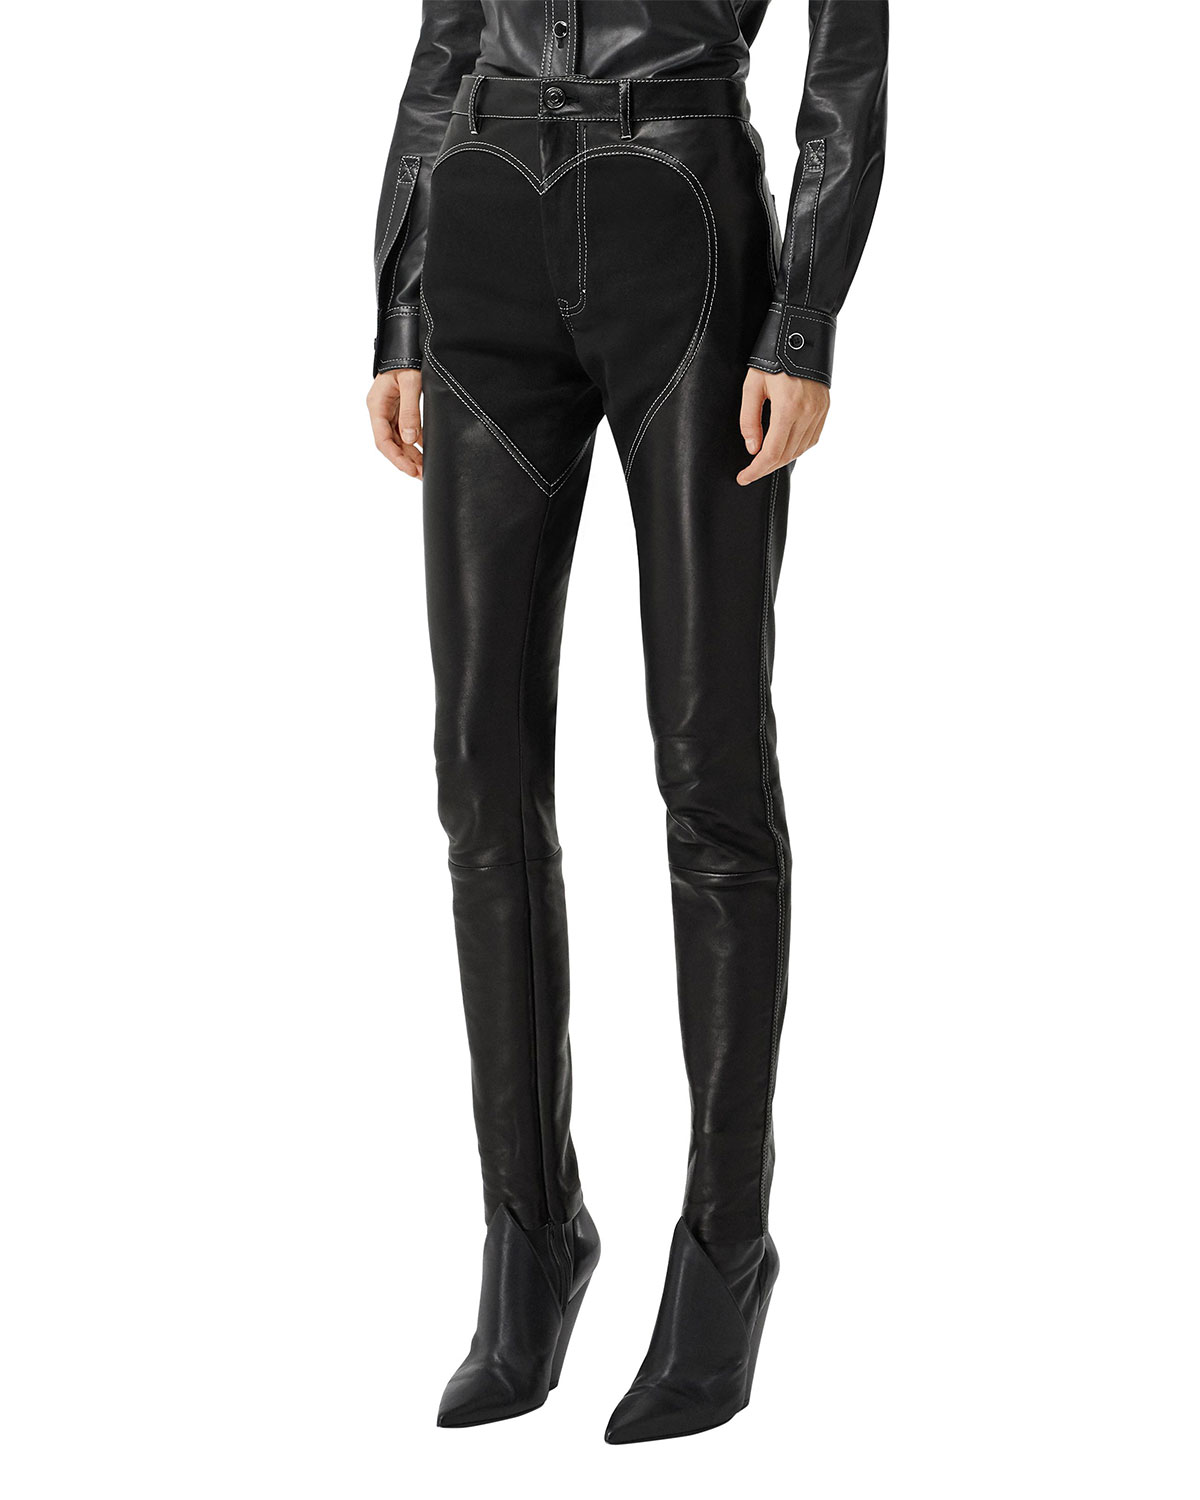 Burberry Leathers LEATHER HEART MOTIF SKINNY PANTS